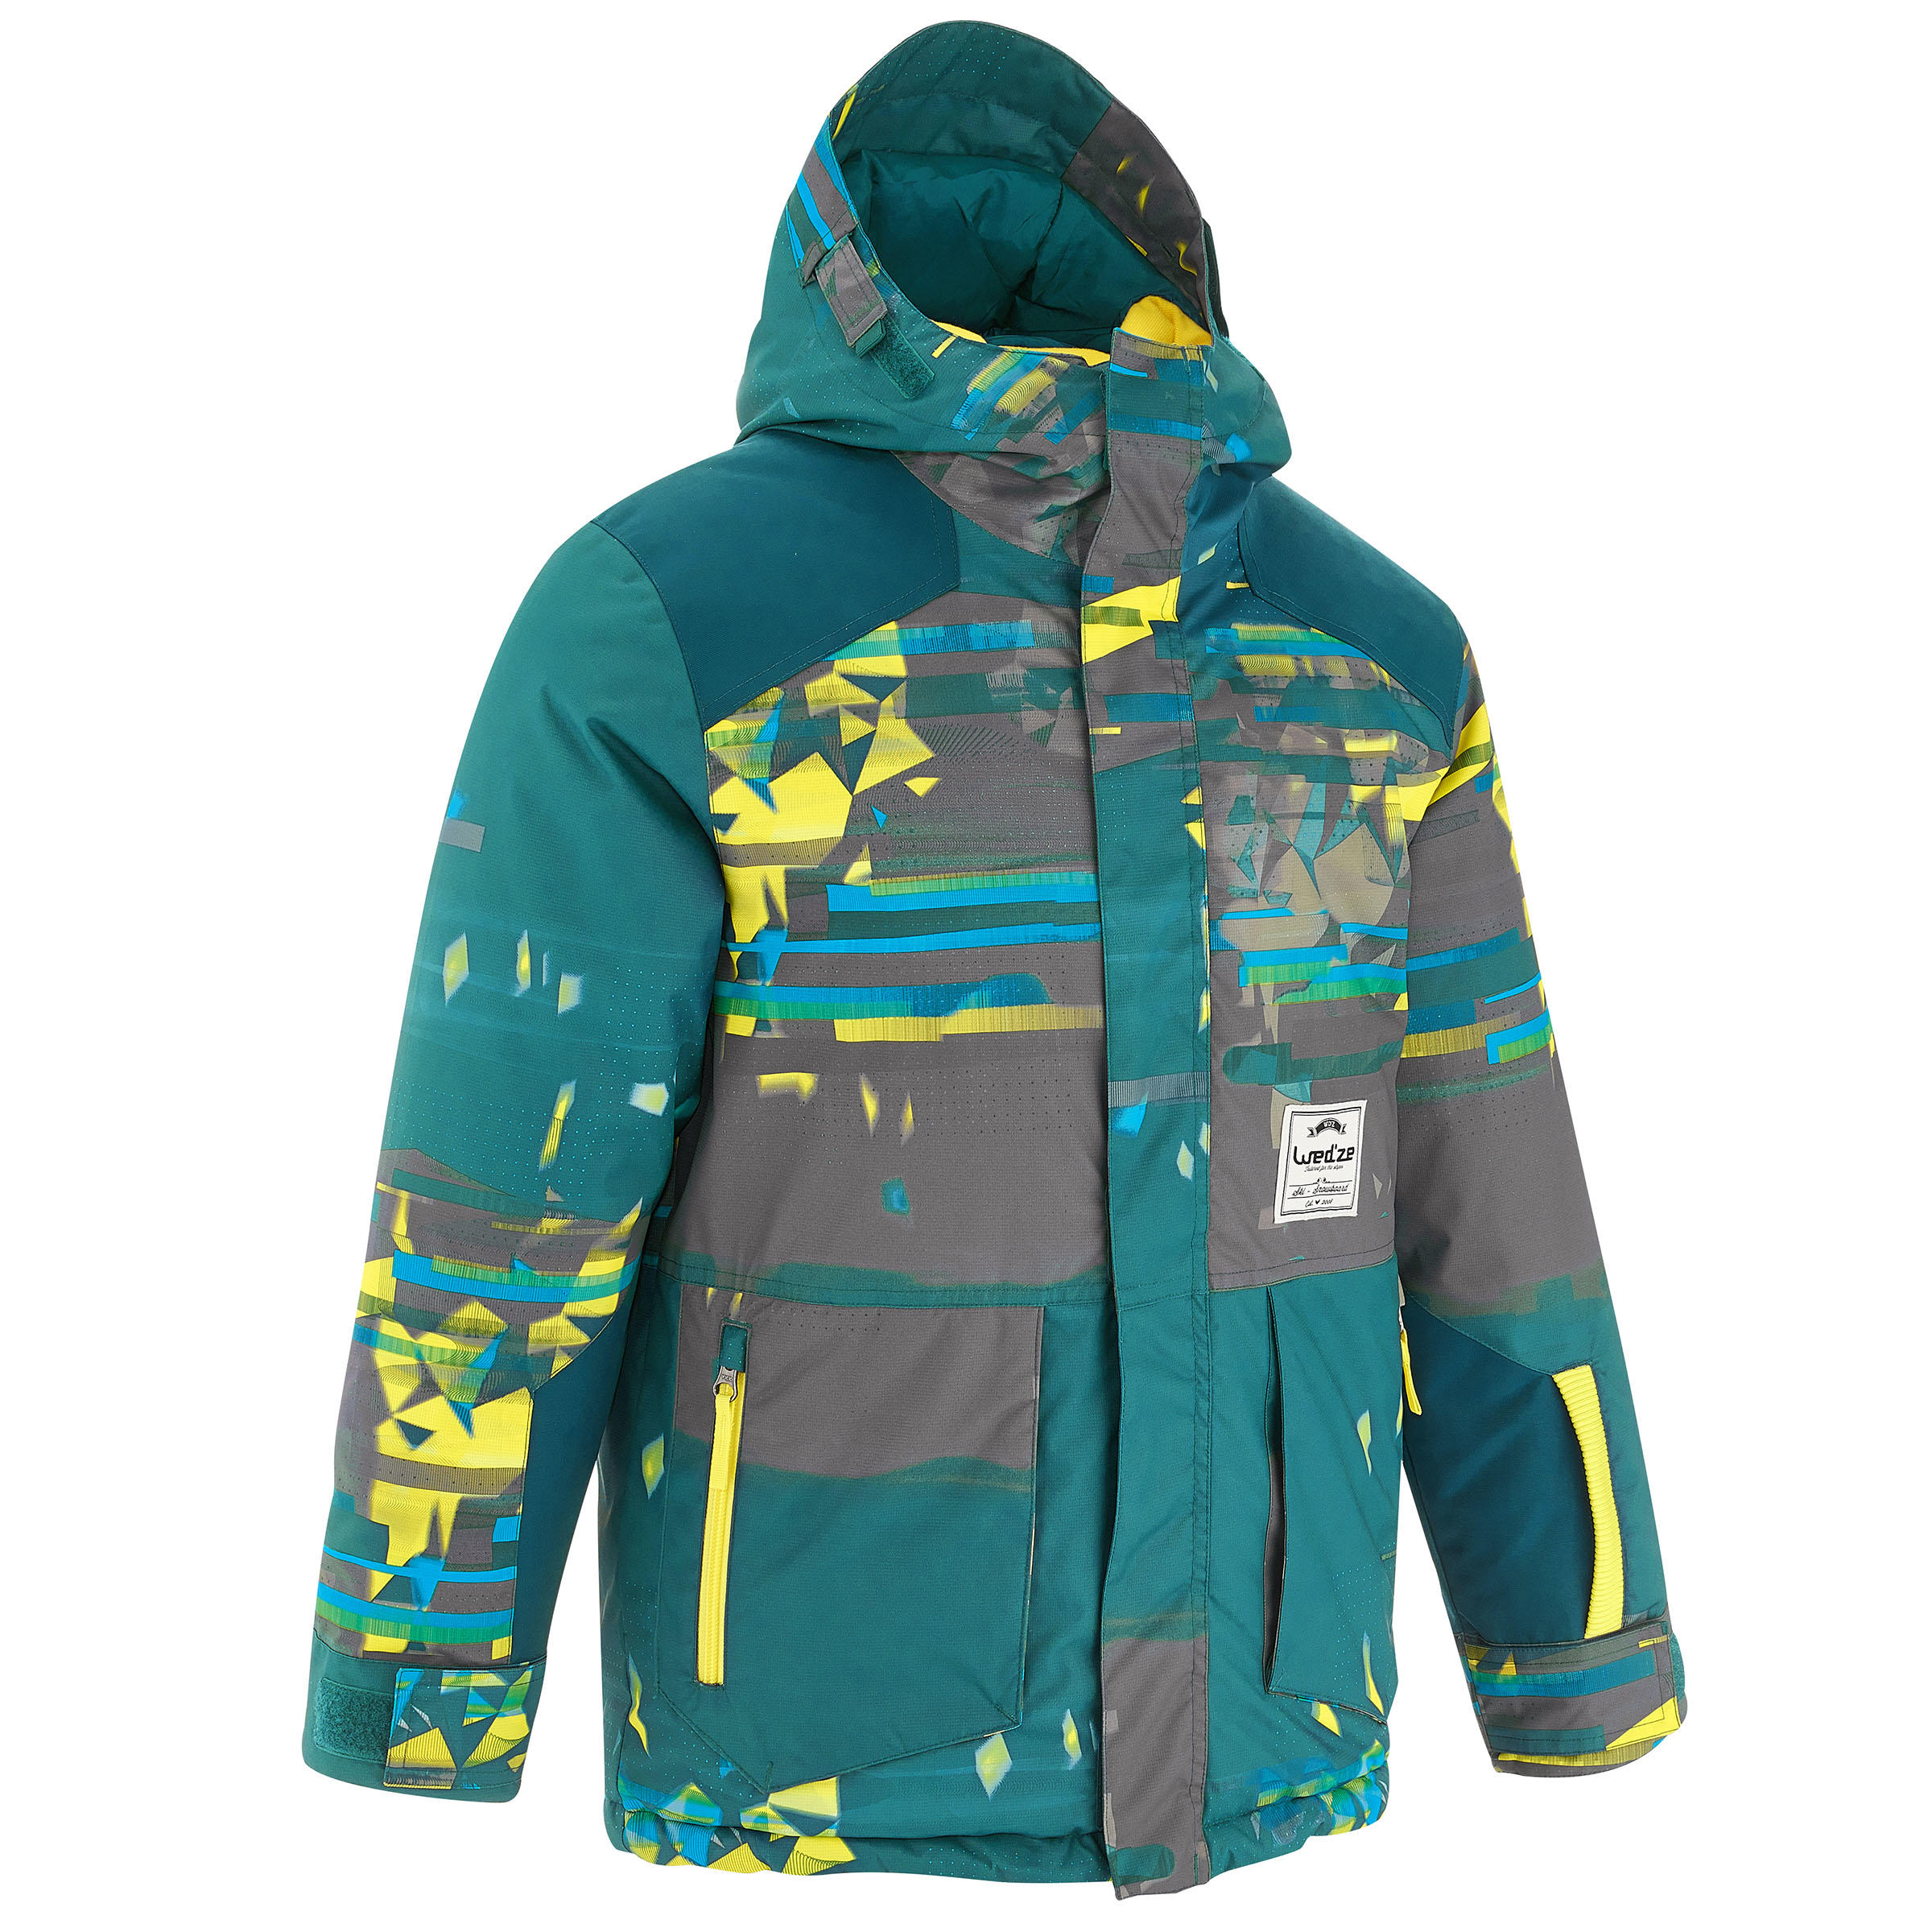 JKT 500 Boys' Snowboard and Ski Jacket - Pale Petrol